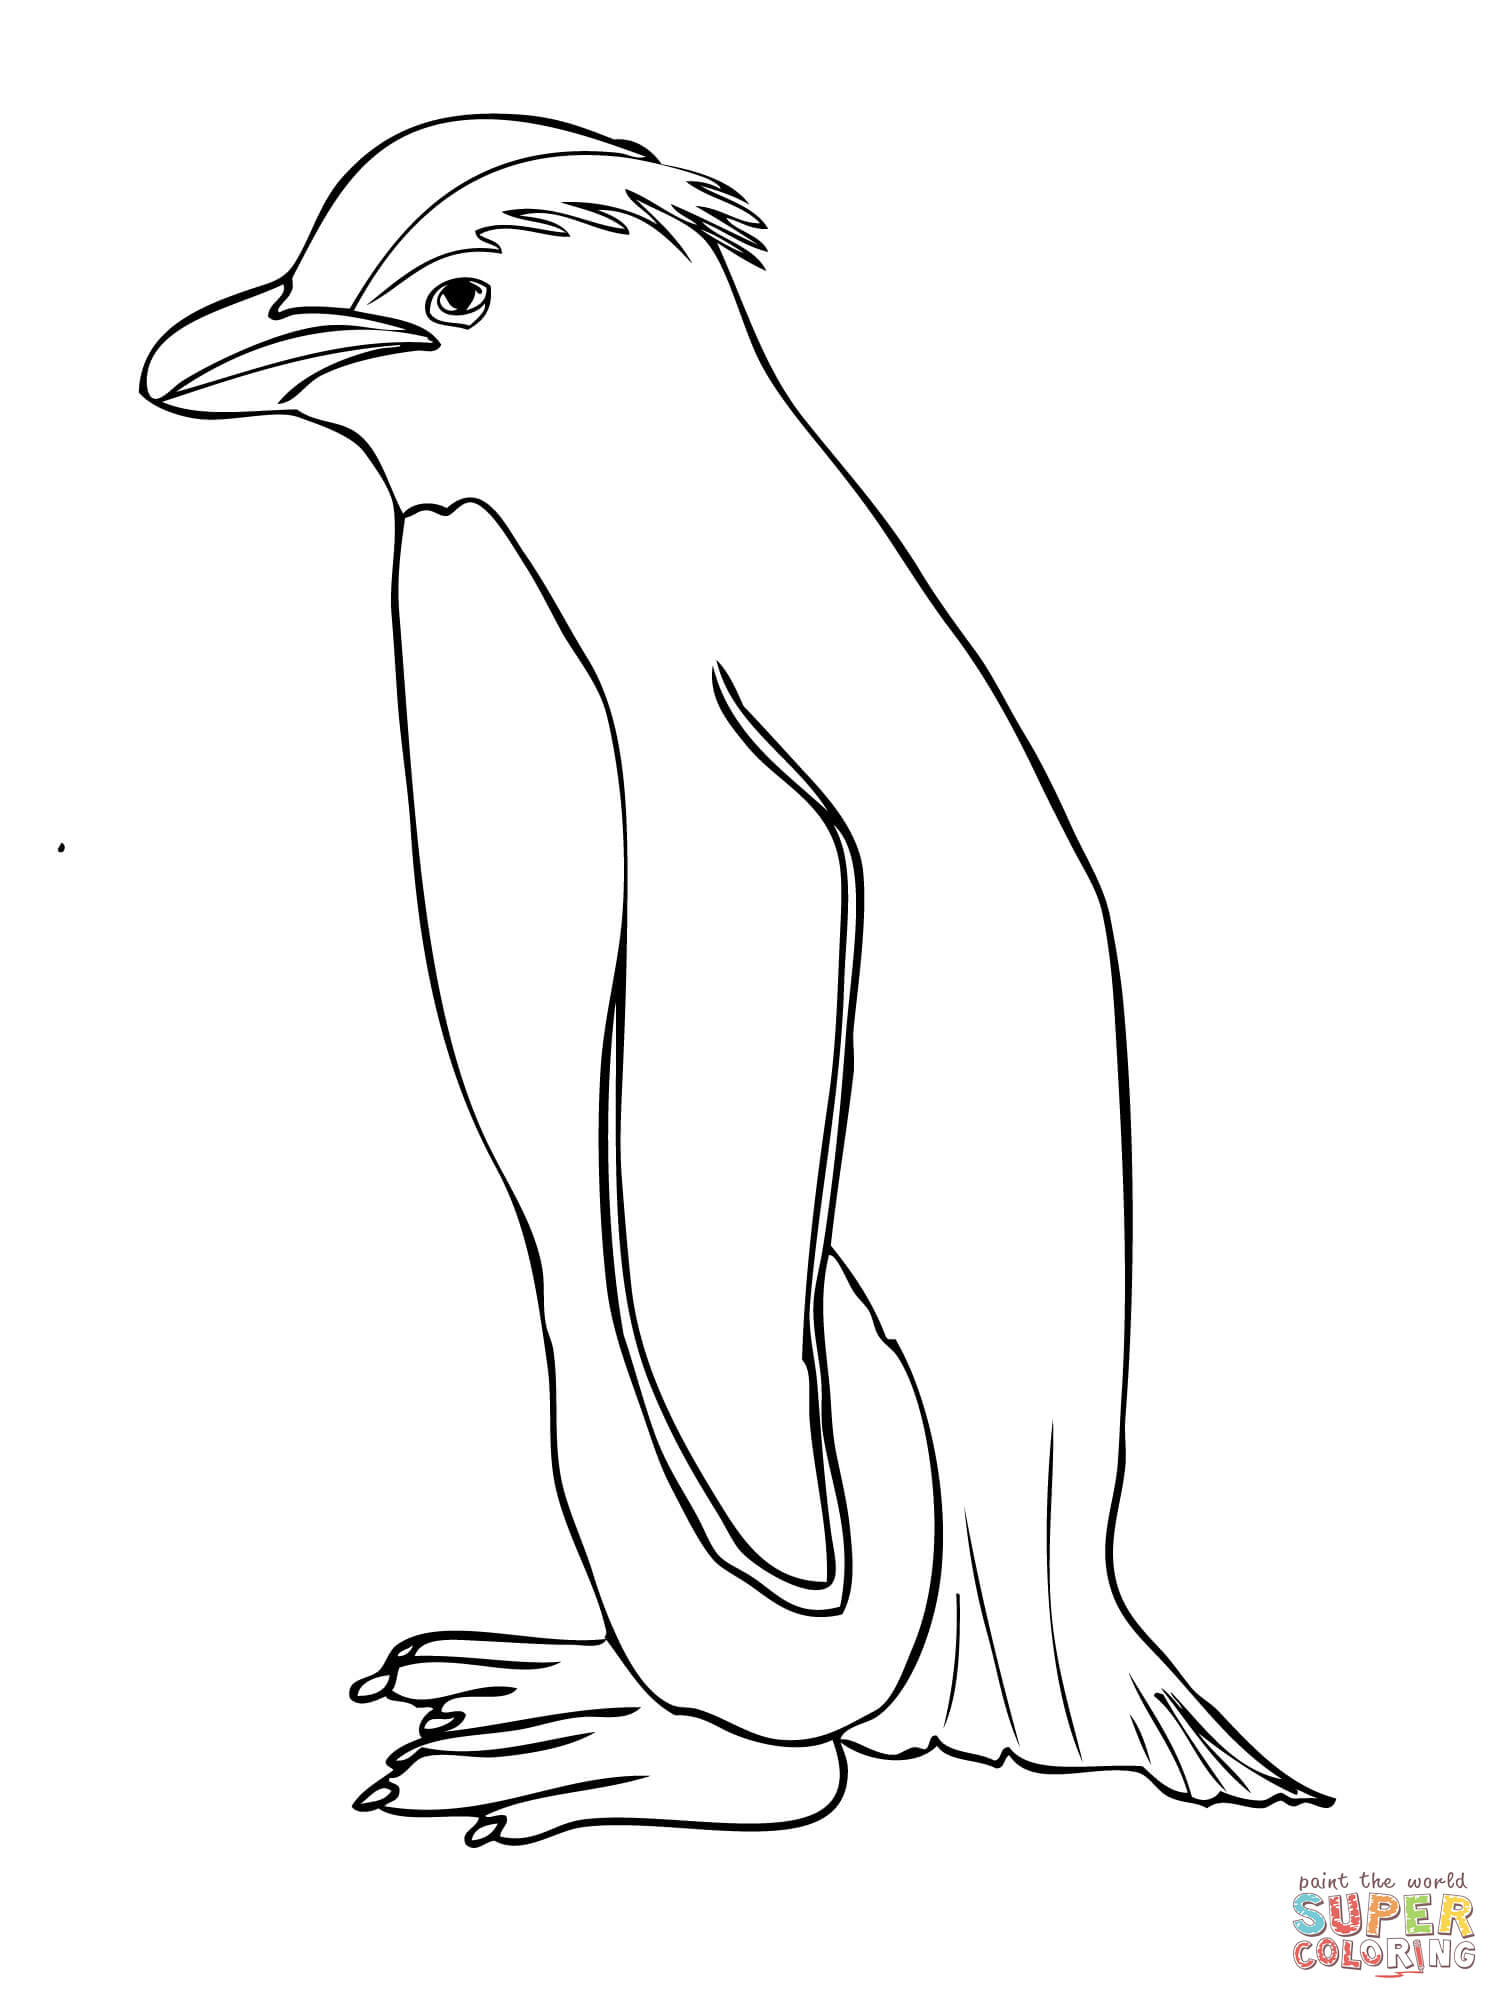 Crested penguin clipart.